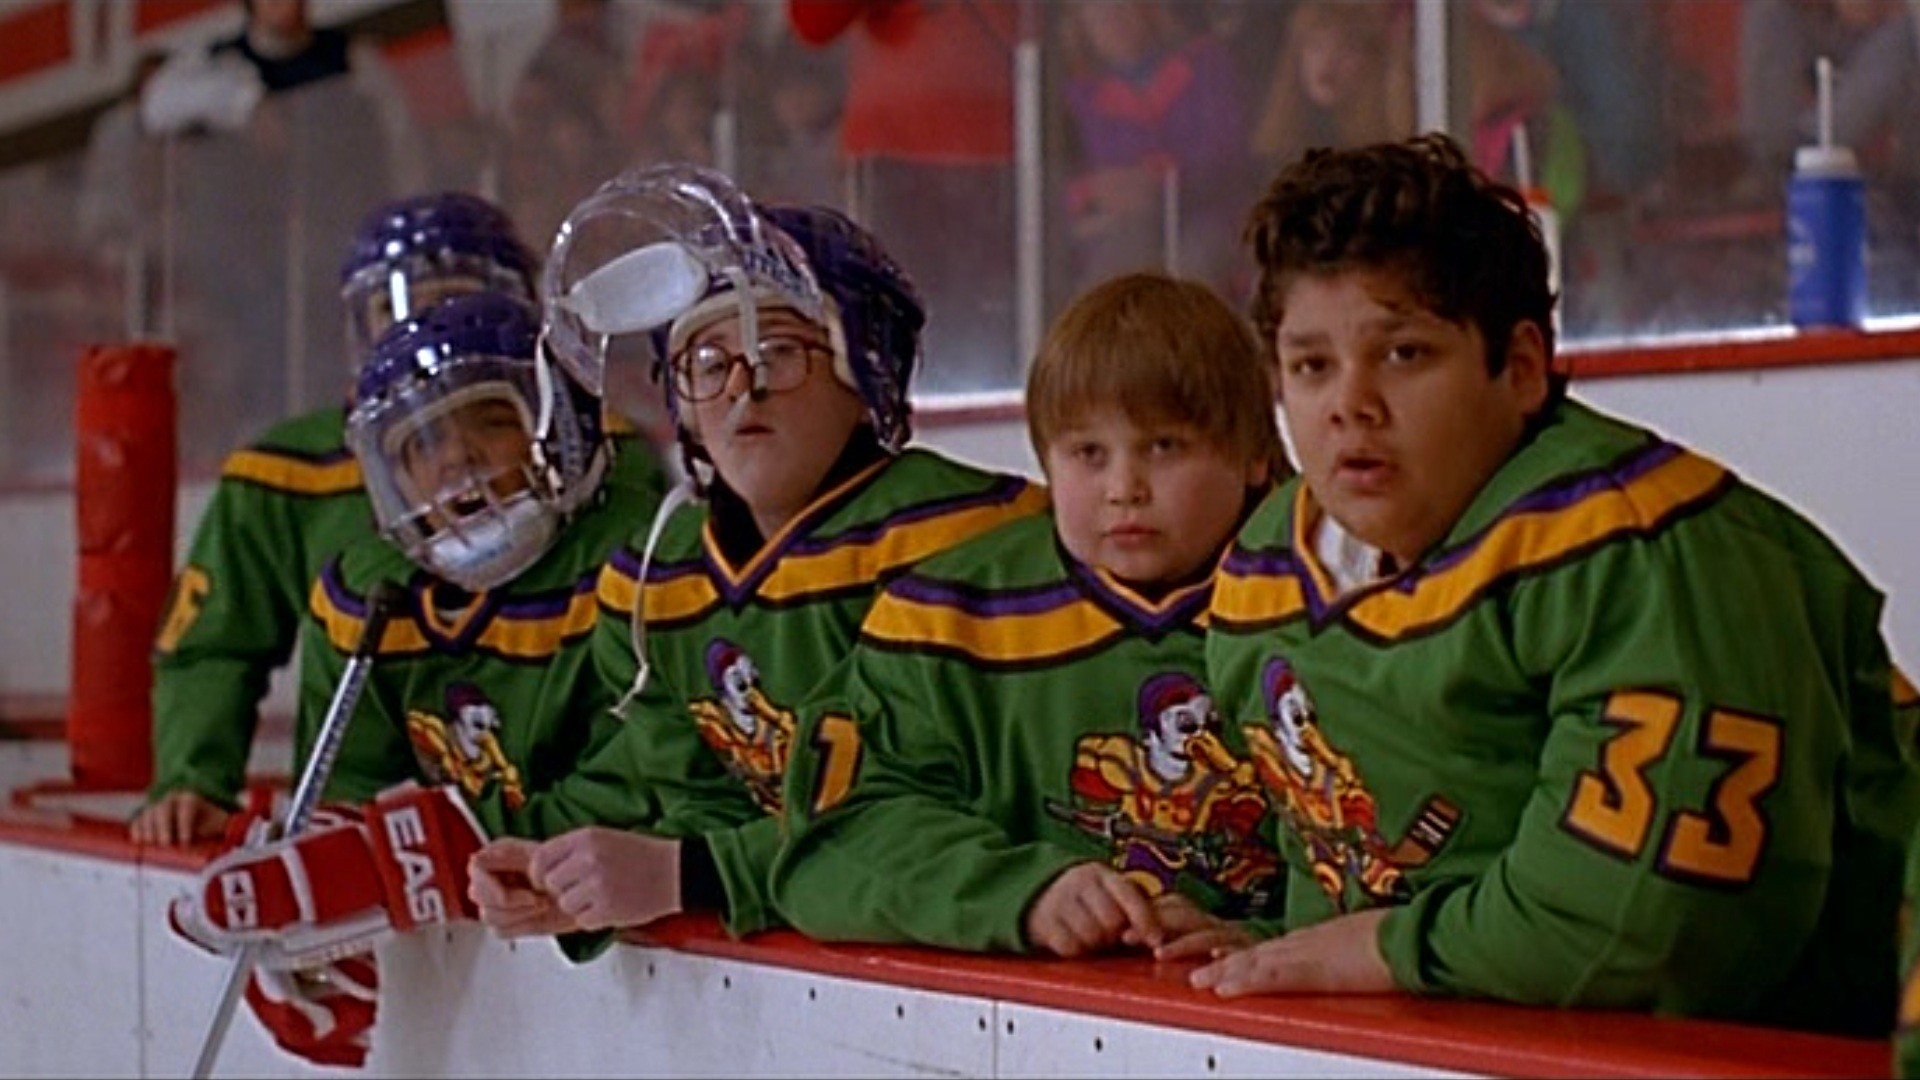 mighty ducks movie critique The mighty ducks (1992) -- simplistic hockey fun for kids, 7/10 sign up for your free netflix trial: tweet a review with t.